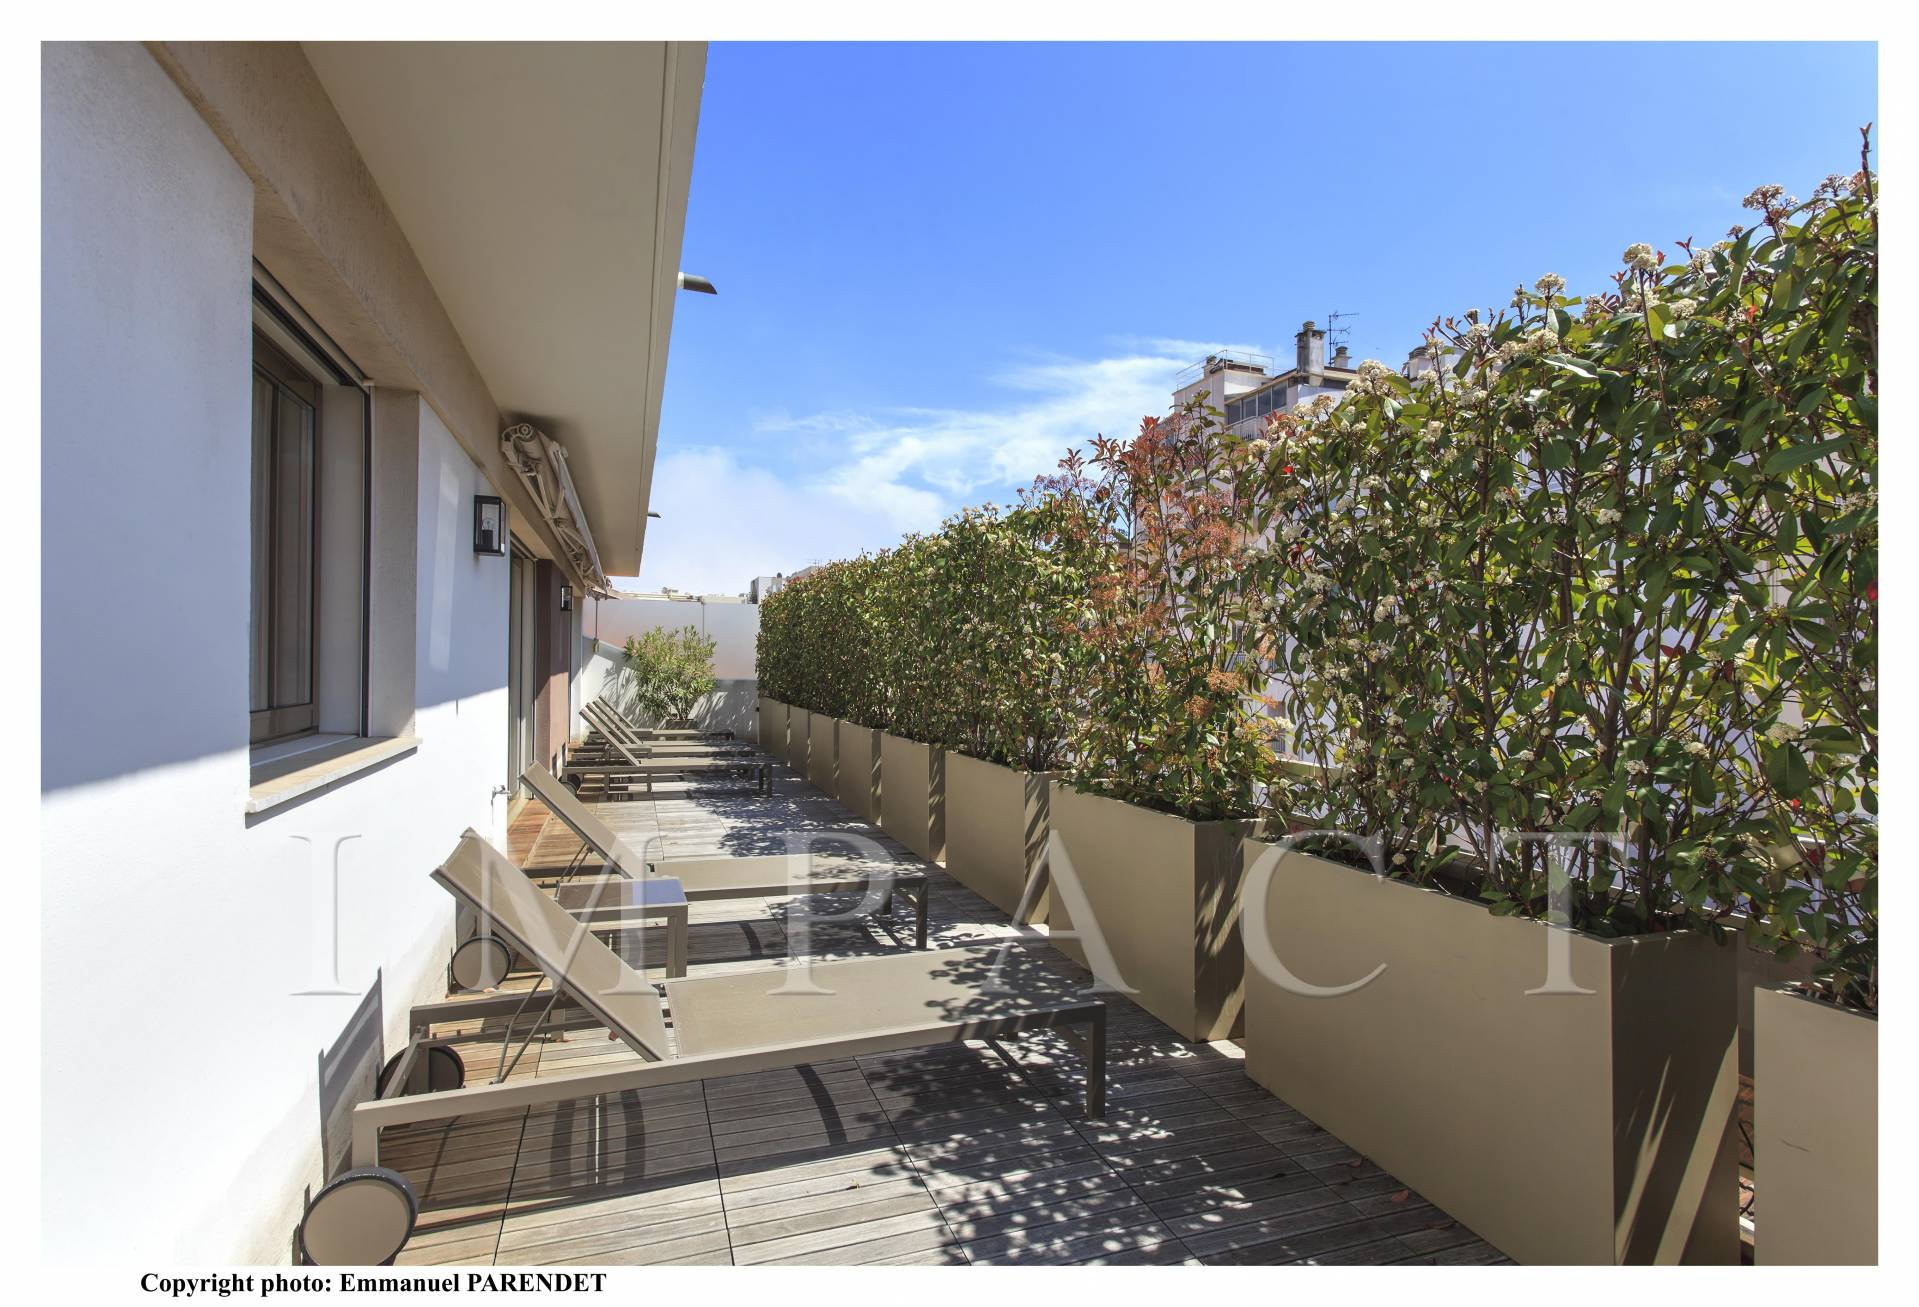 4 bedrooms Penthouse to rent, city center, Cannes